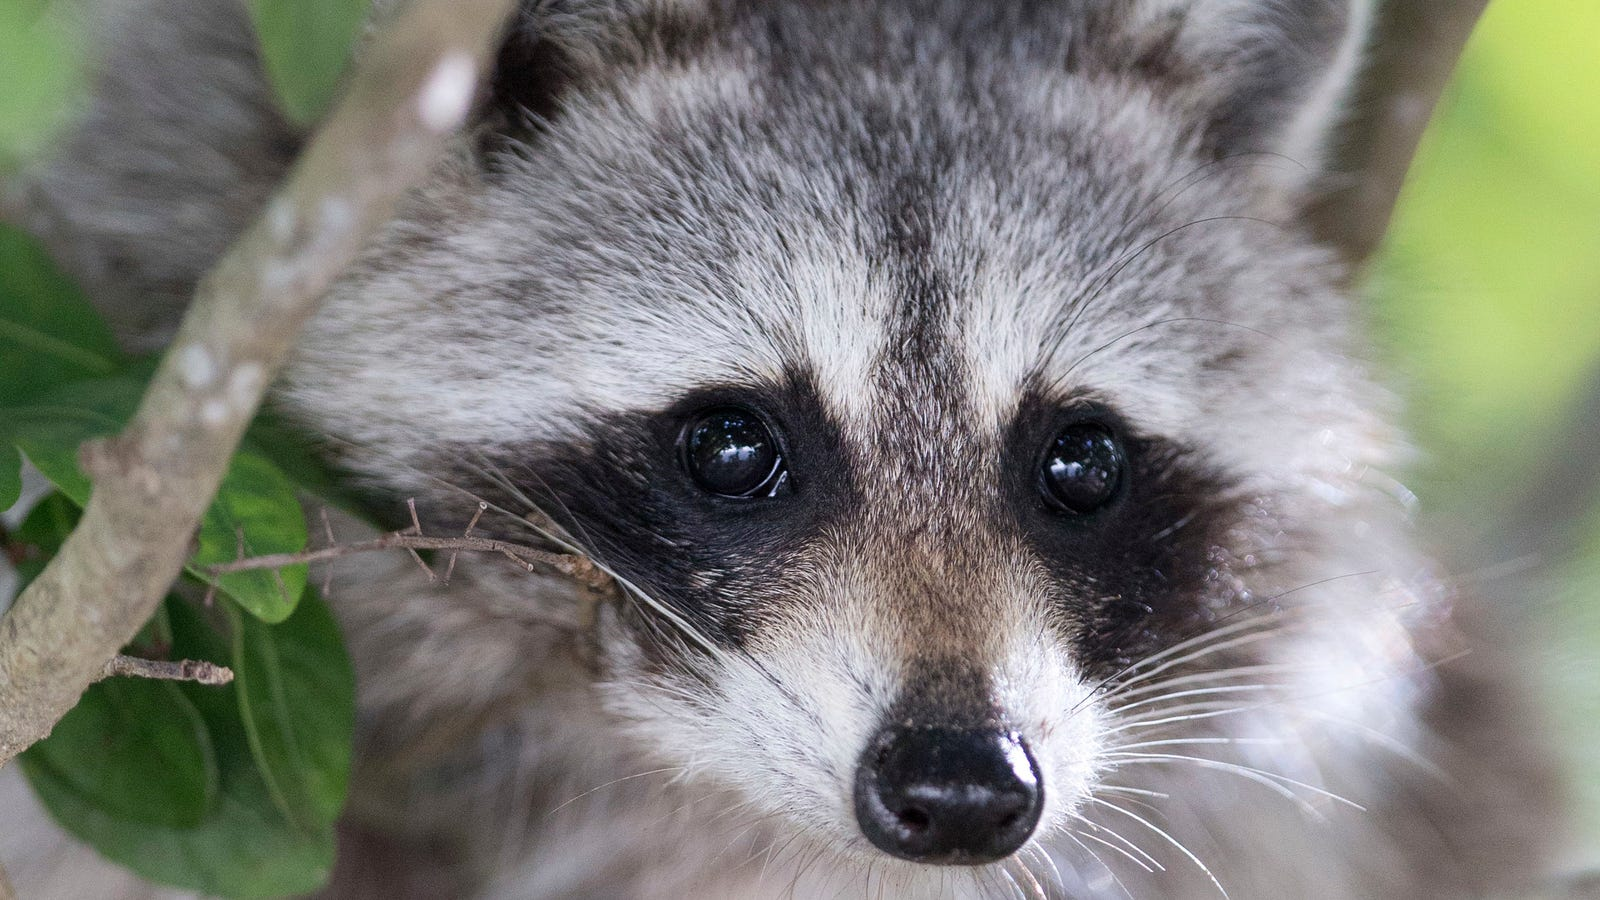 Someone Please Save the Raccoon